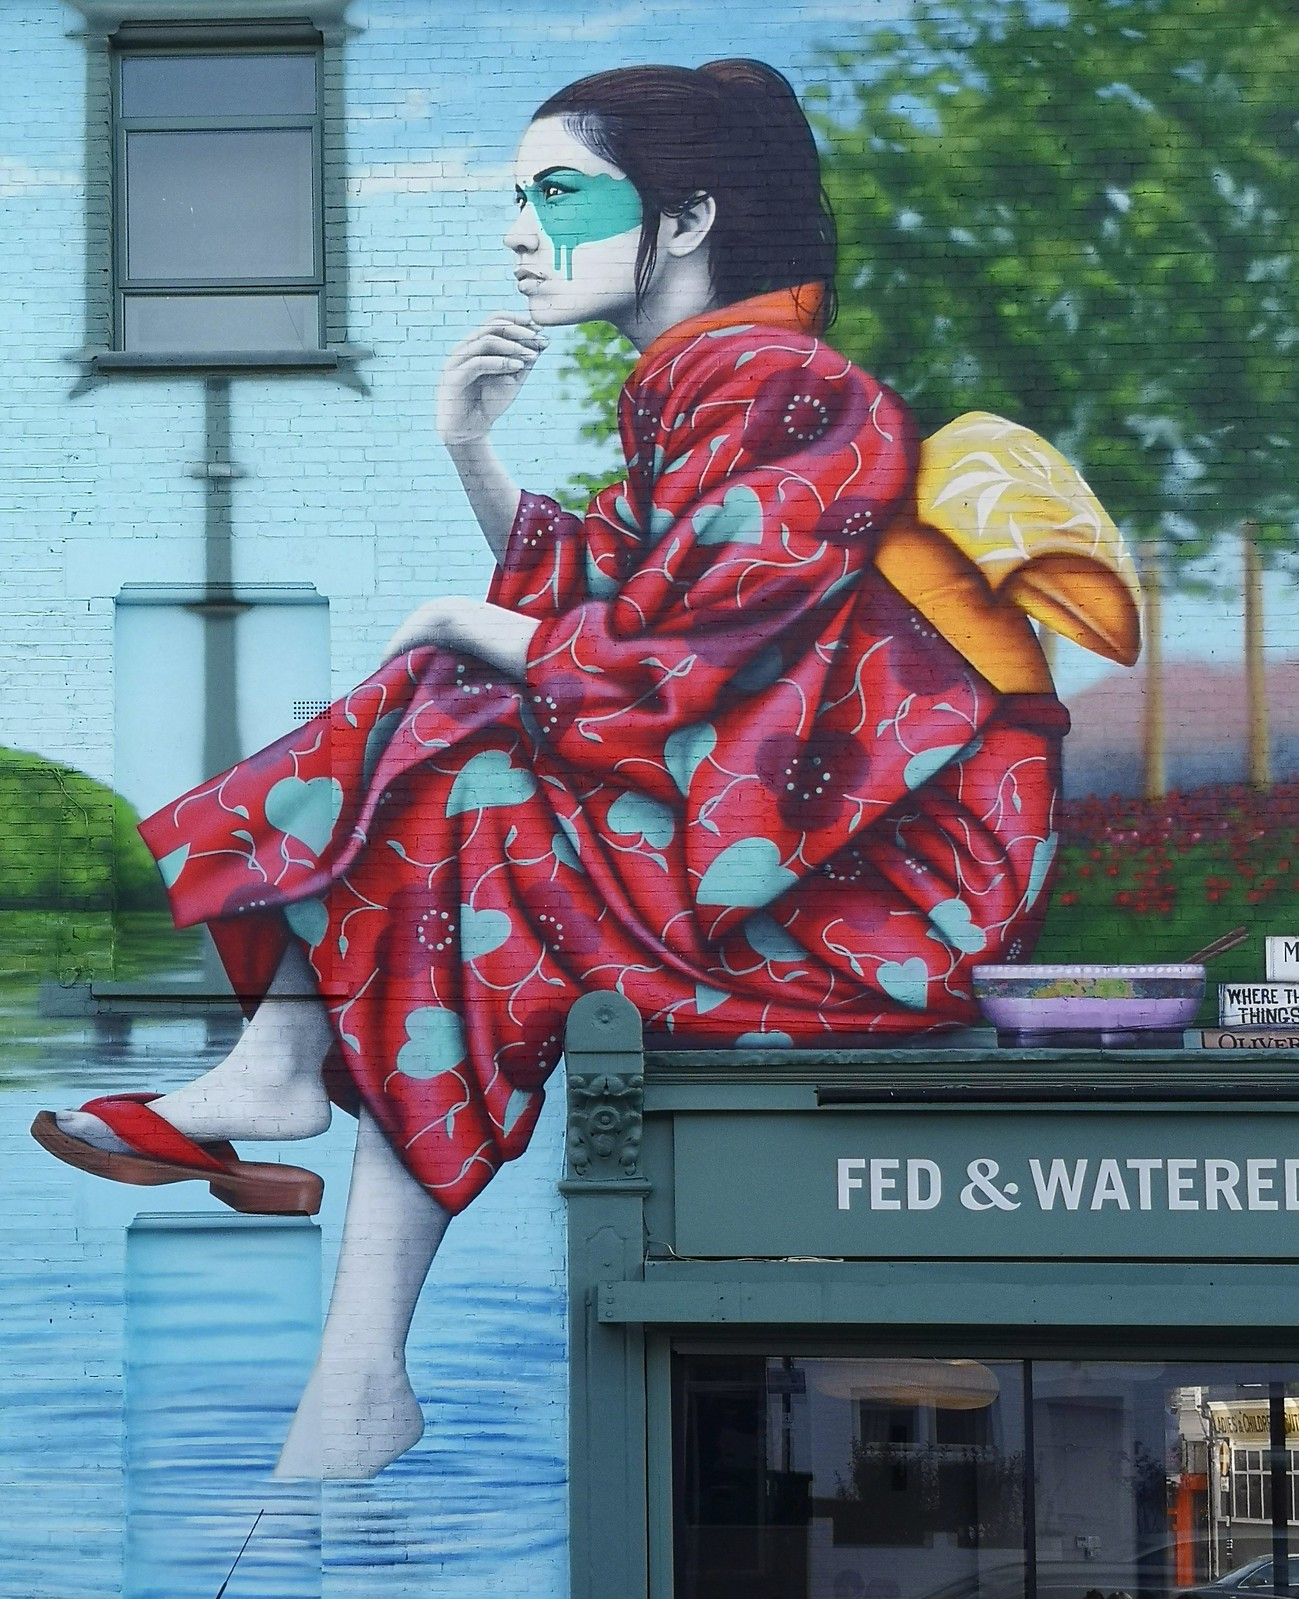 By Fin DAC in West London, England (3 photos) - Street Art Utopia